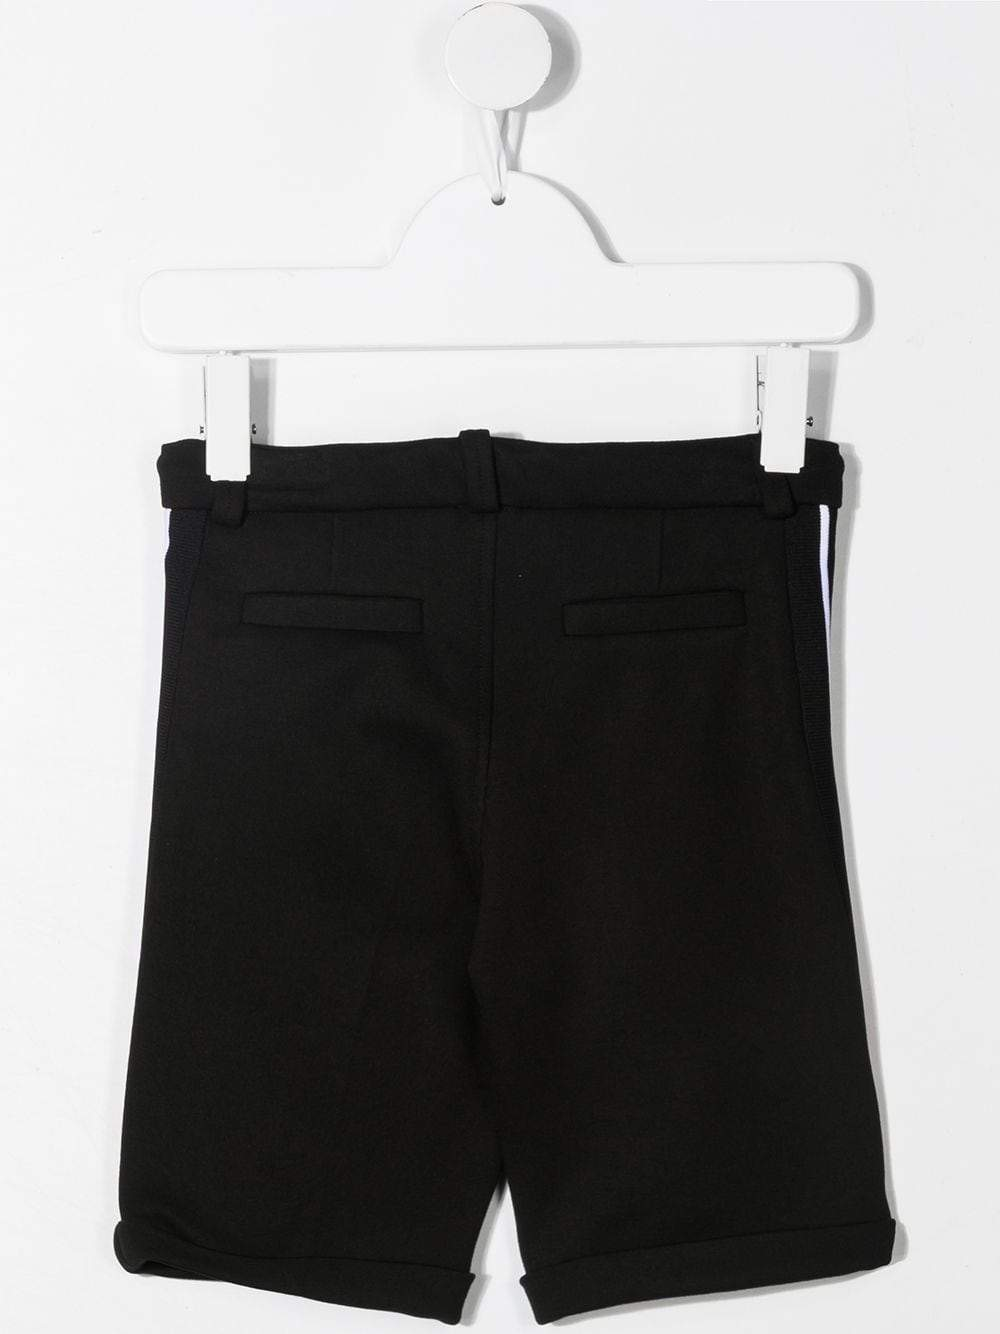 GIVENCHY KIDS Logo Tape Shorts Black